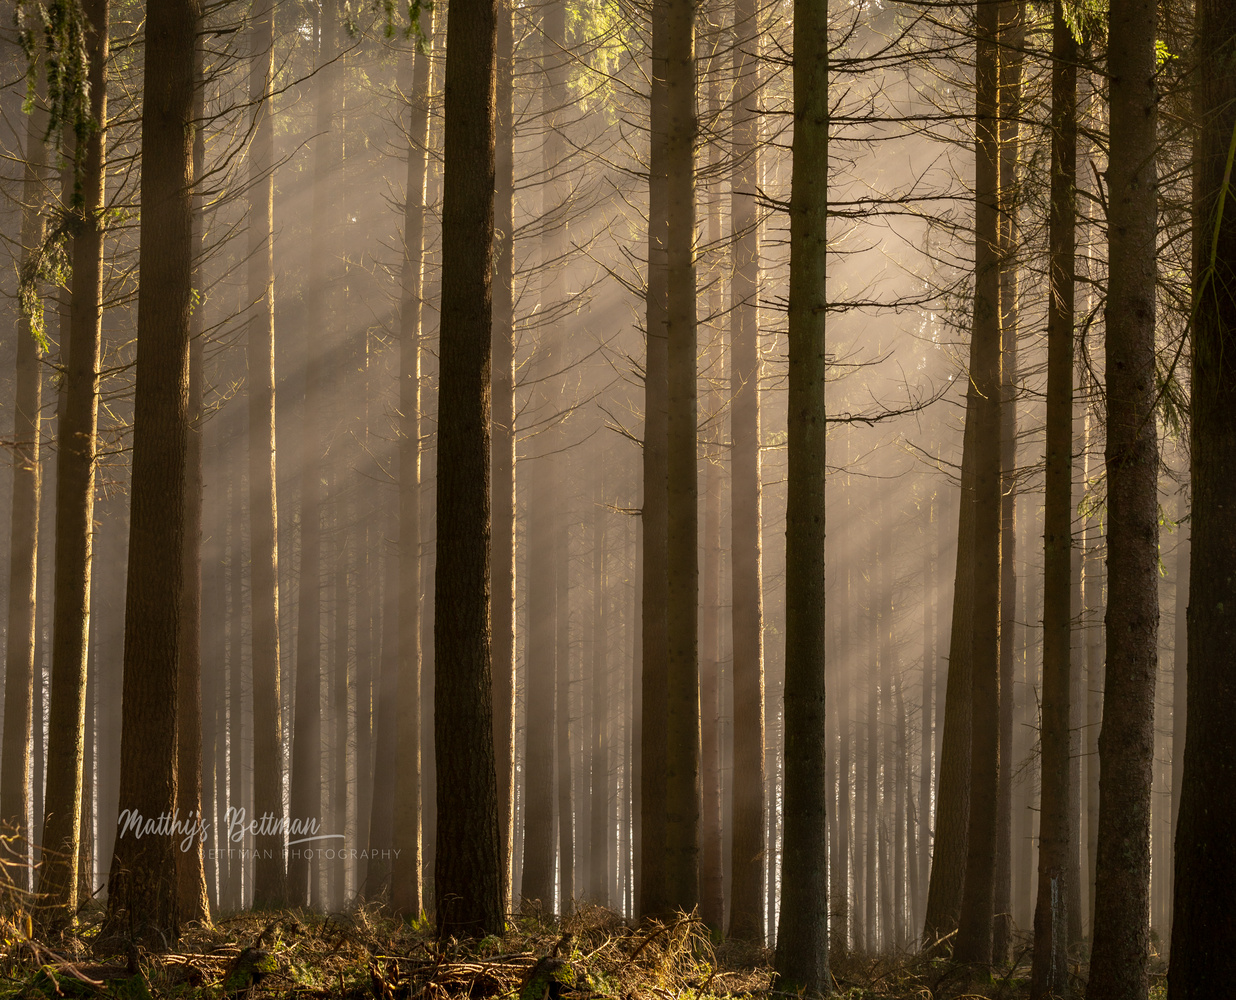 Deep into the forest by Matthijs Bettman